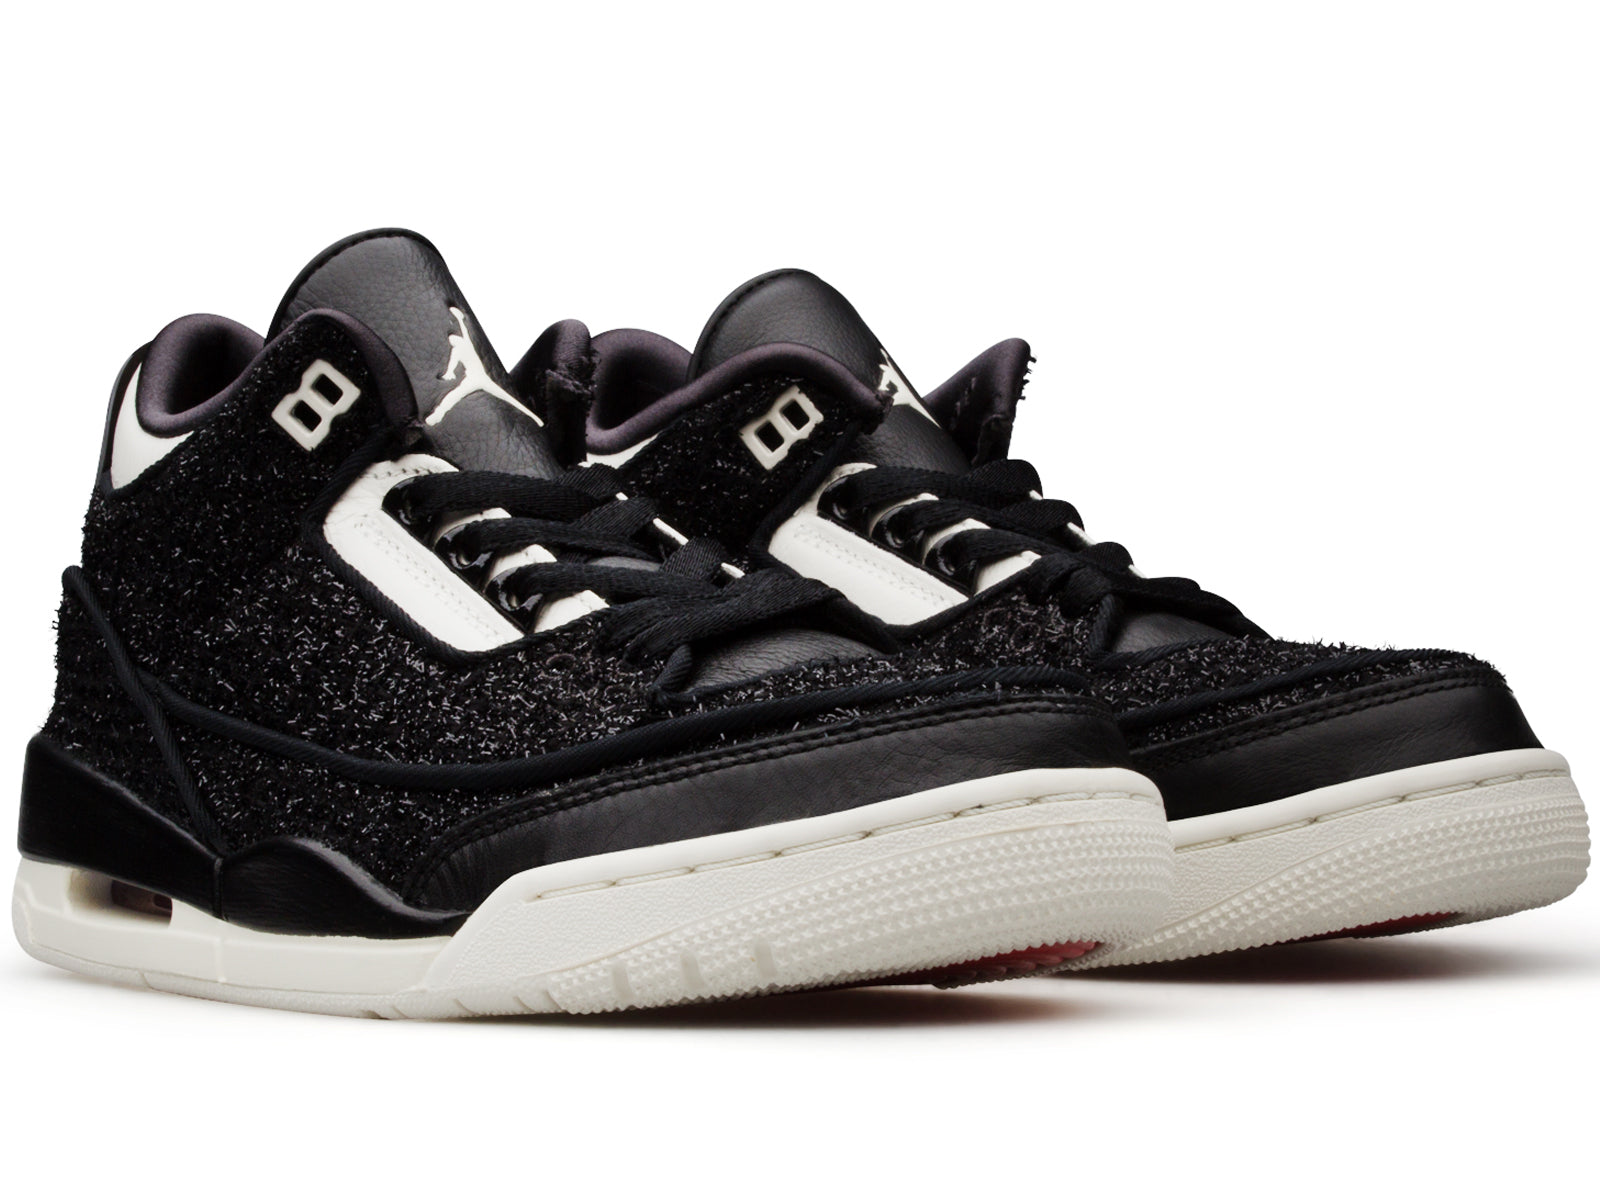 bf6ce1ad635 He took the court in 1985 wearing the original Air Jordan I